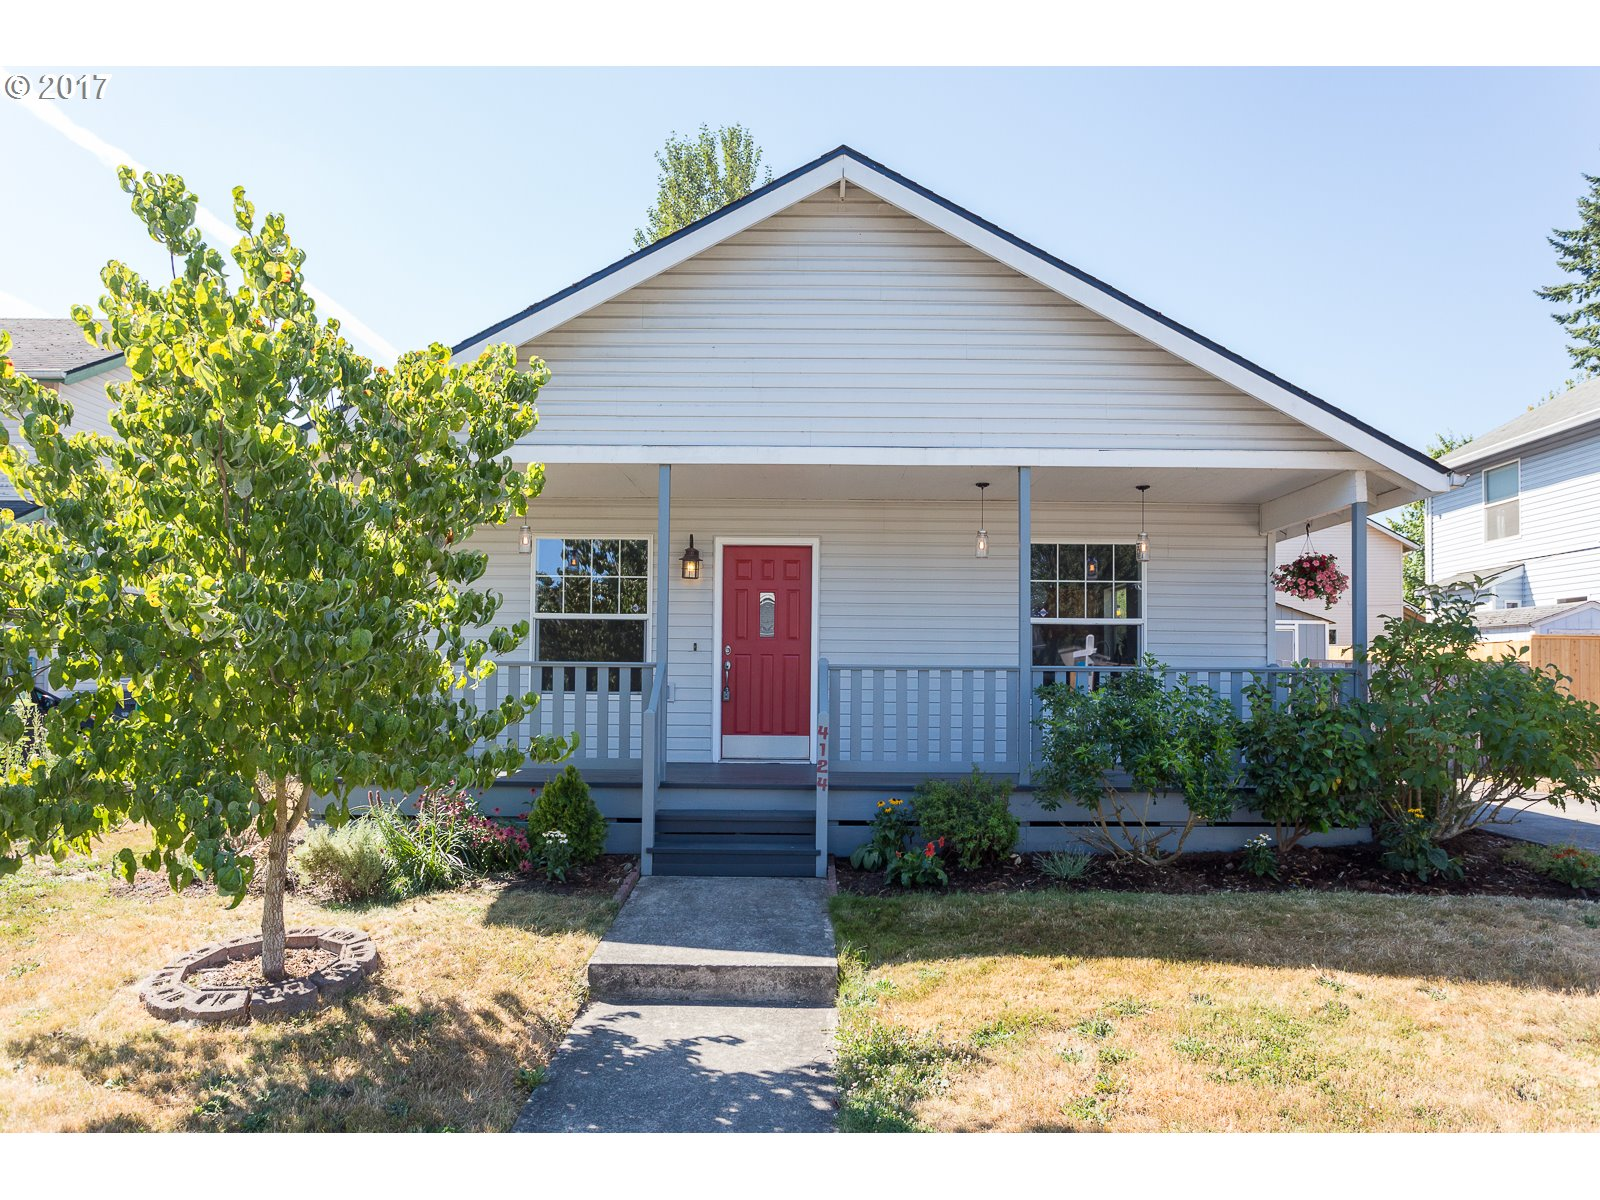 Modern Farmhouse in Red Hot Portsmouth! The full-length front porch w/charming mason jar lights for vintage charm. Inside there's a modern floor plan for today's living. Great room concept w/spacious DR, open kitchen & large LR. Master suite, two add'l bedrooms & 2nd full bath. Laundry room w/extra storage room. Plus a sturdy outside shed. Fenced yard w/rooms for kids, dogs& gardening. All on a quiet culdesac. Open Sun 8/20 1-3